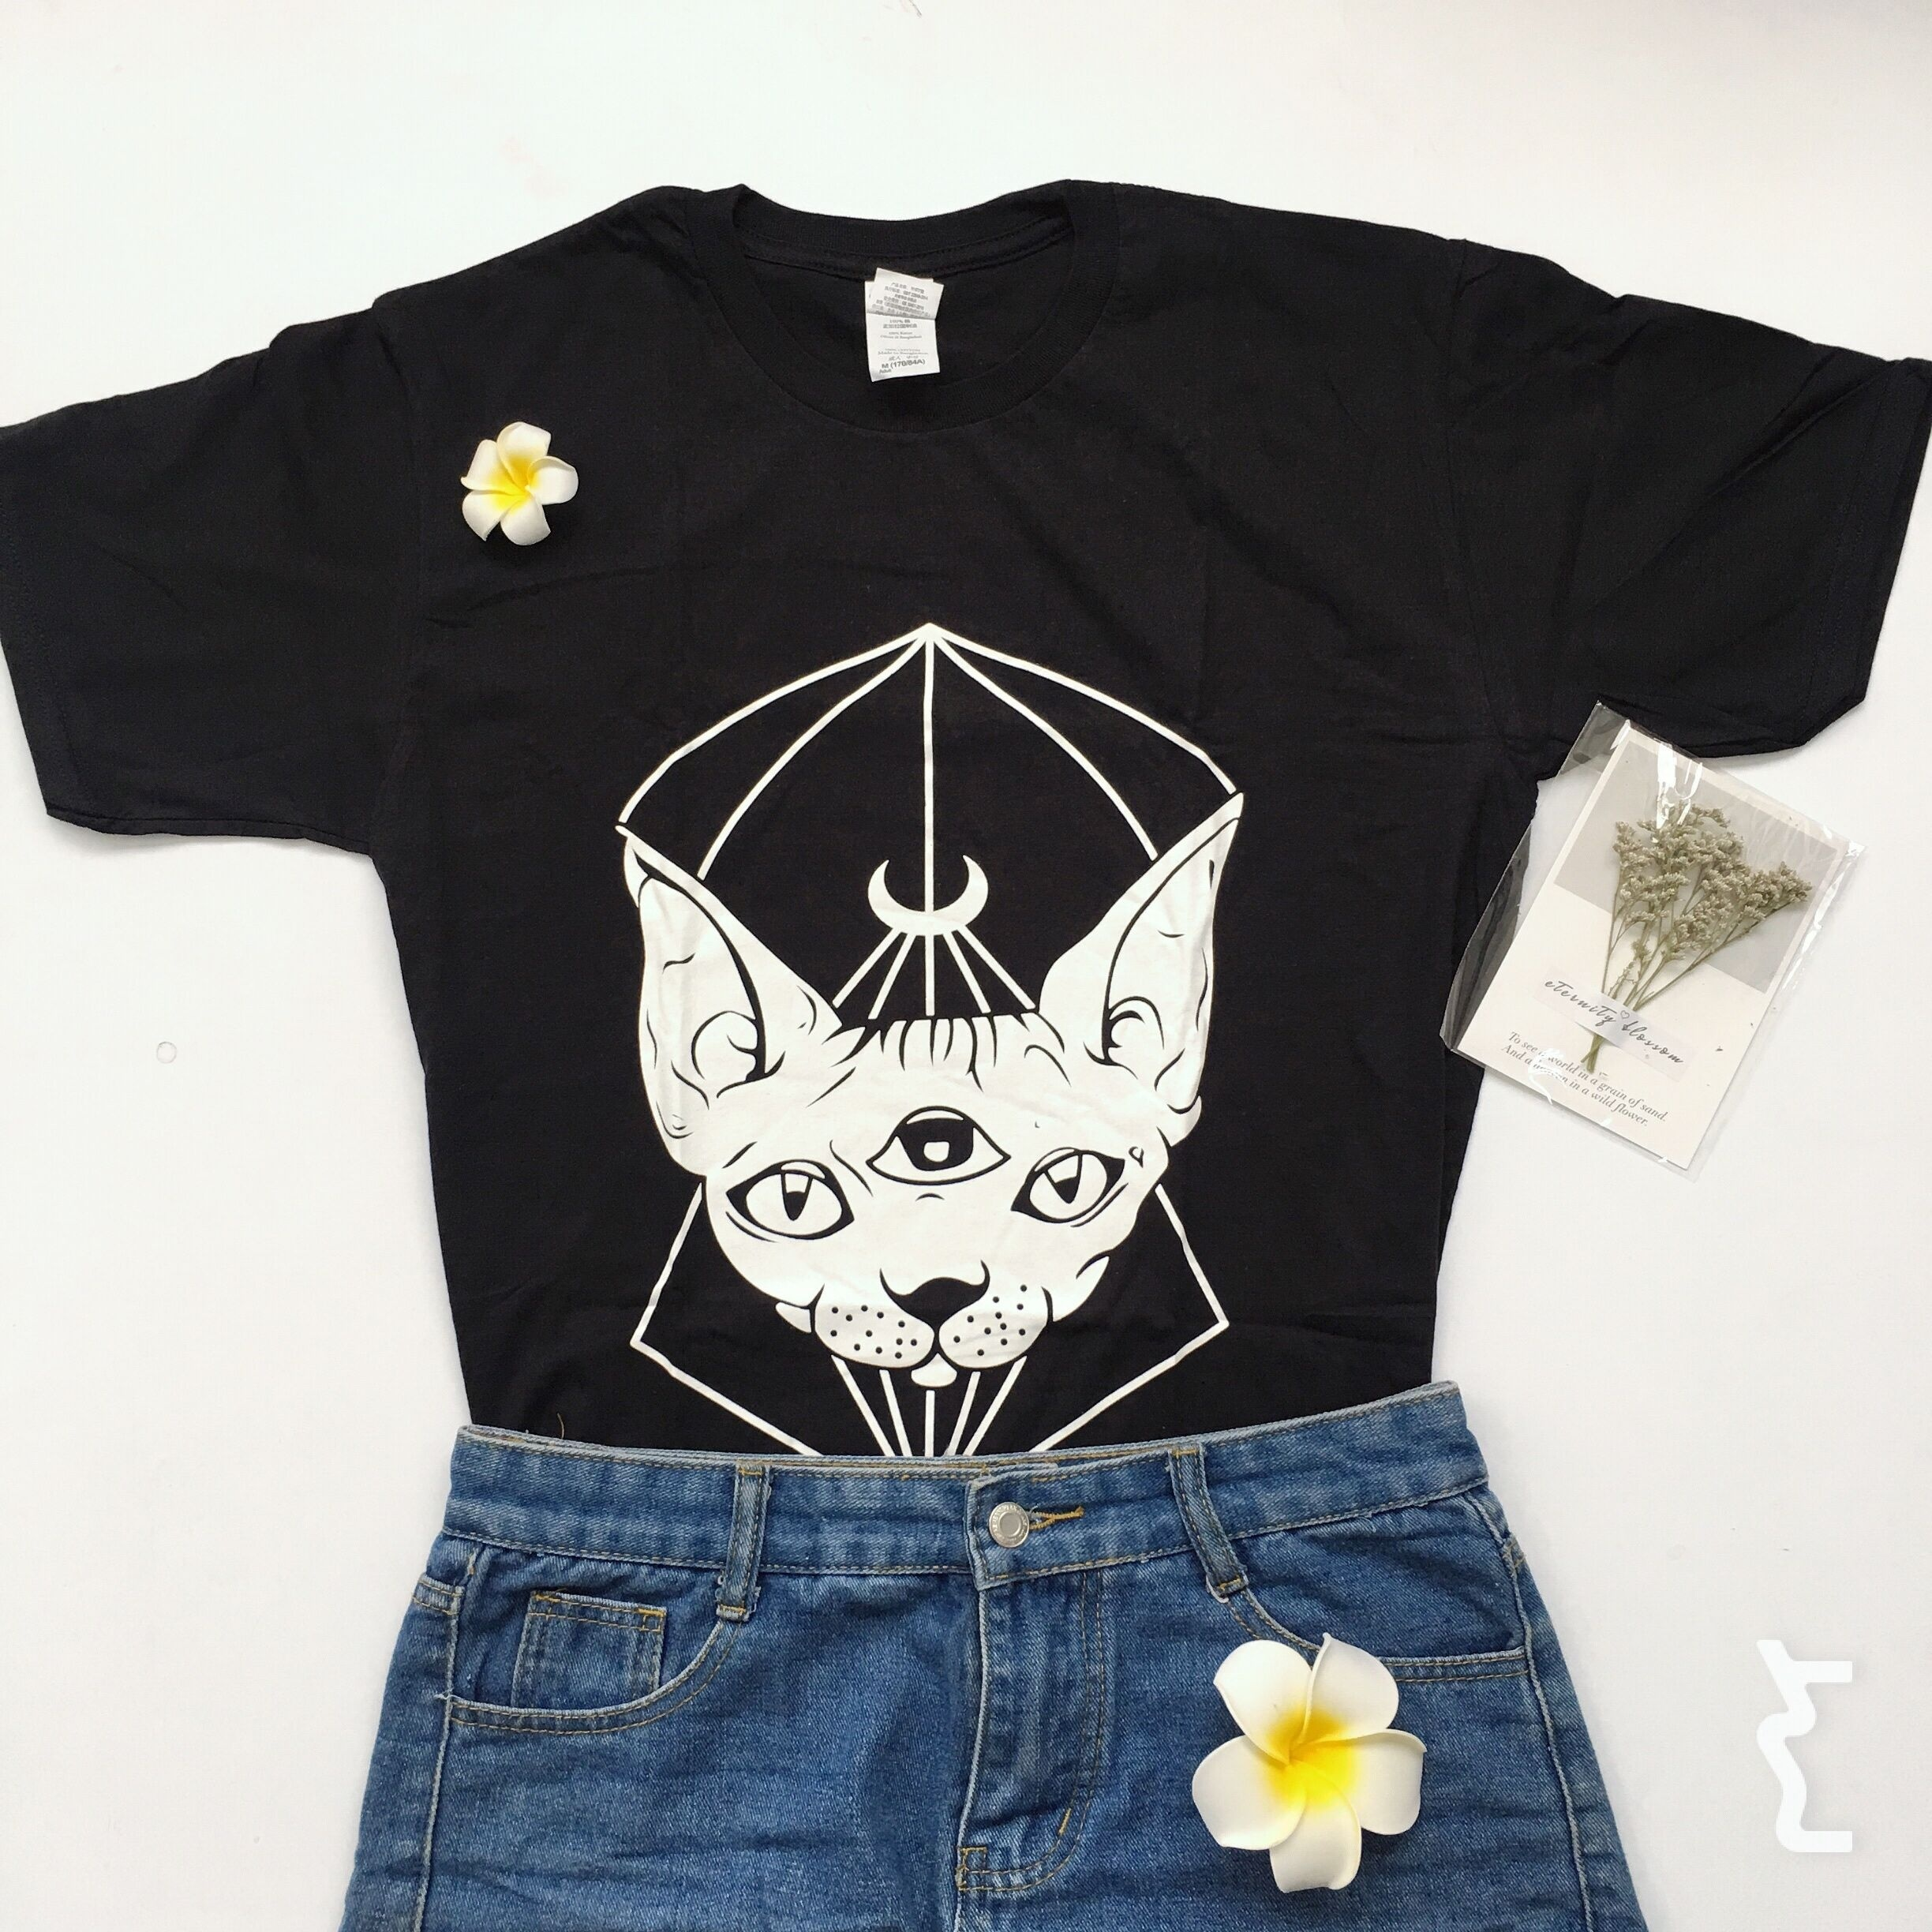 e1538633 PUDO HJN Sphynx Cat Canada T shirts Cotton Tee Tops Short Sleeve Punk  Gothic Sphynx Cat Head Moon Printed-in T-Shirts from Women's Clothing on ...